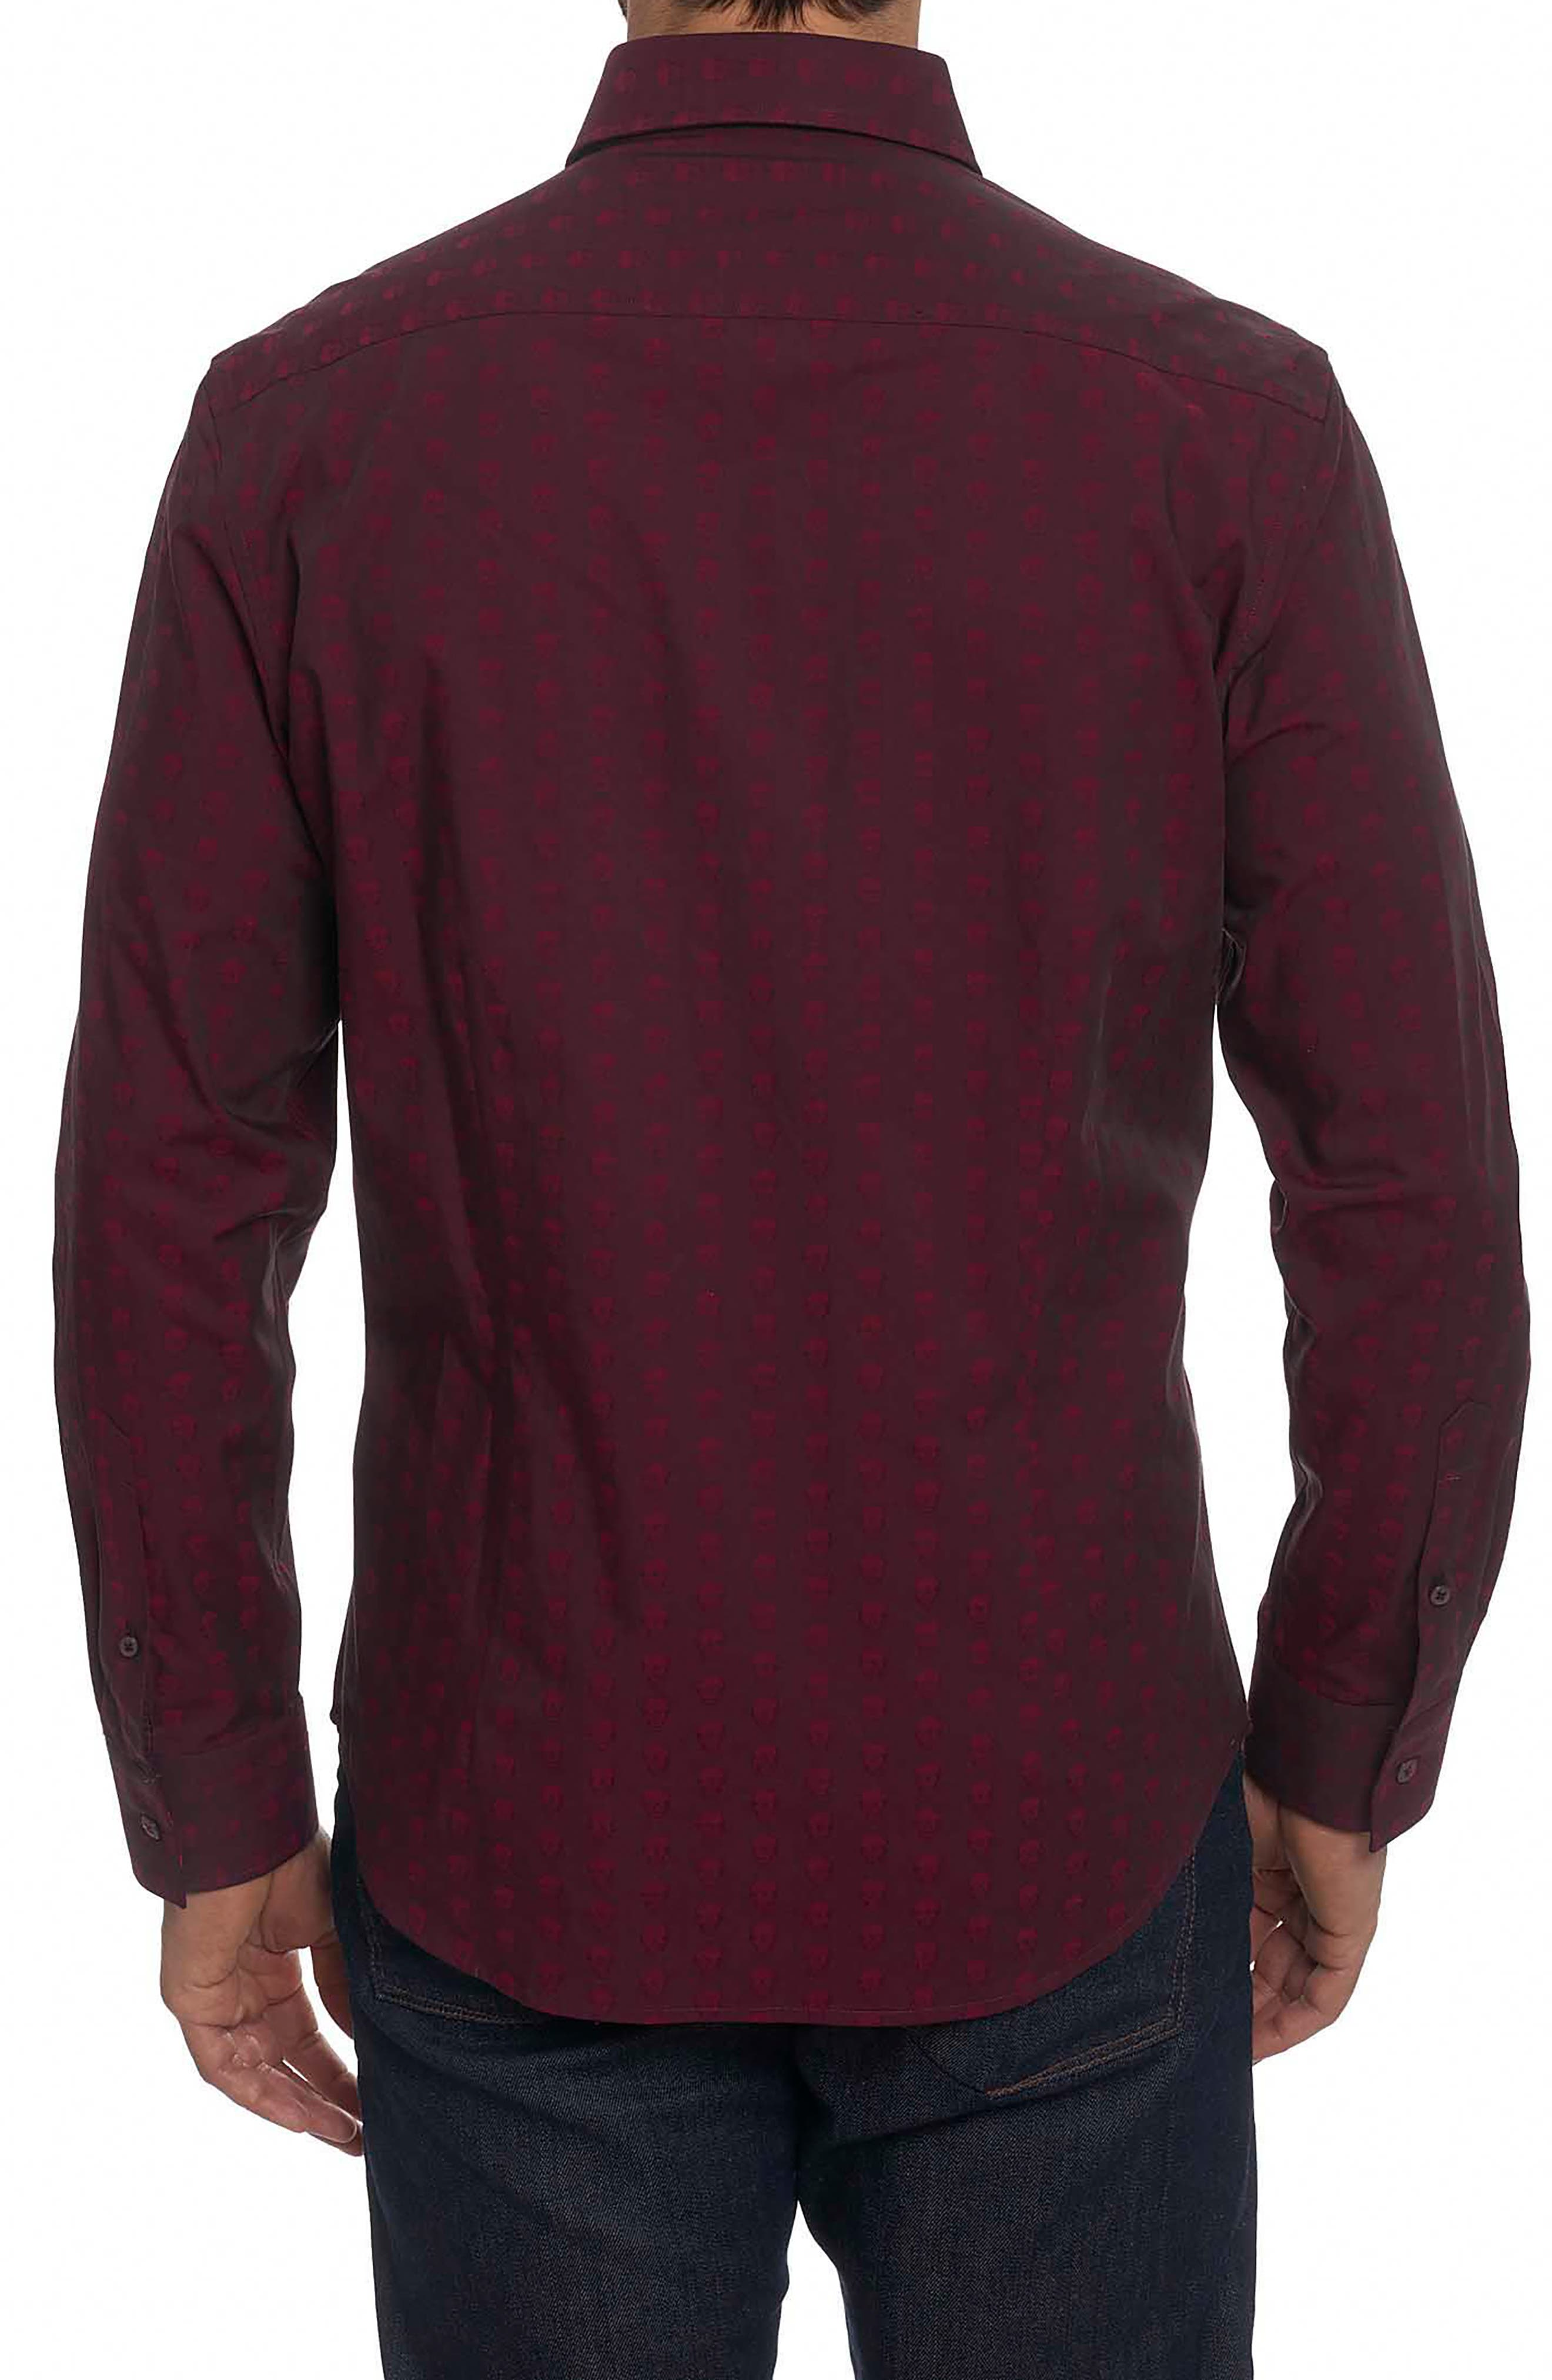 Deven Tailored Fit Sport Shirt,                             Alternate thumbnail 2, color,                             Red